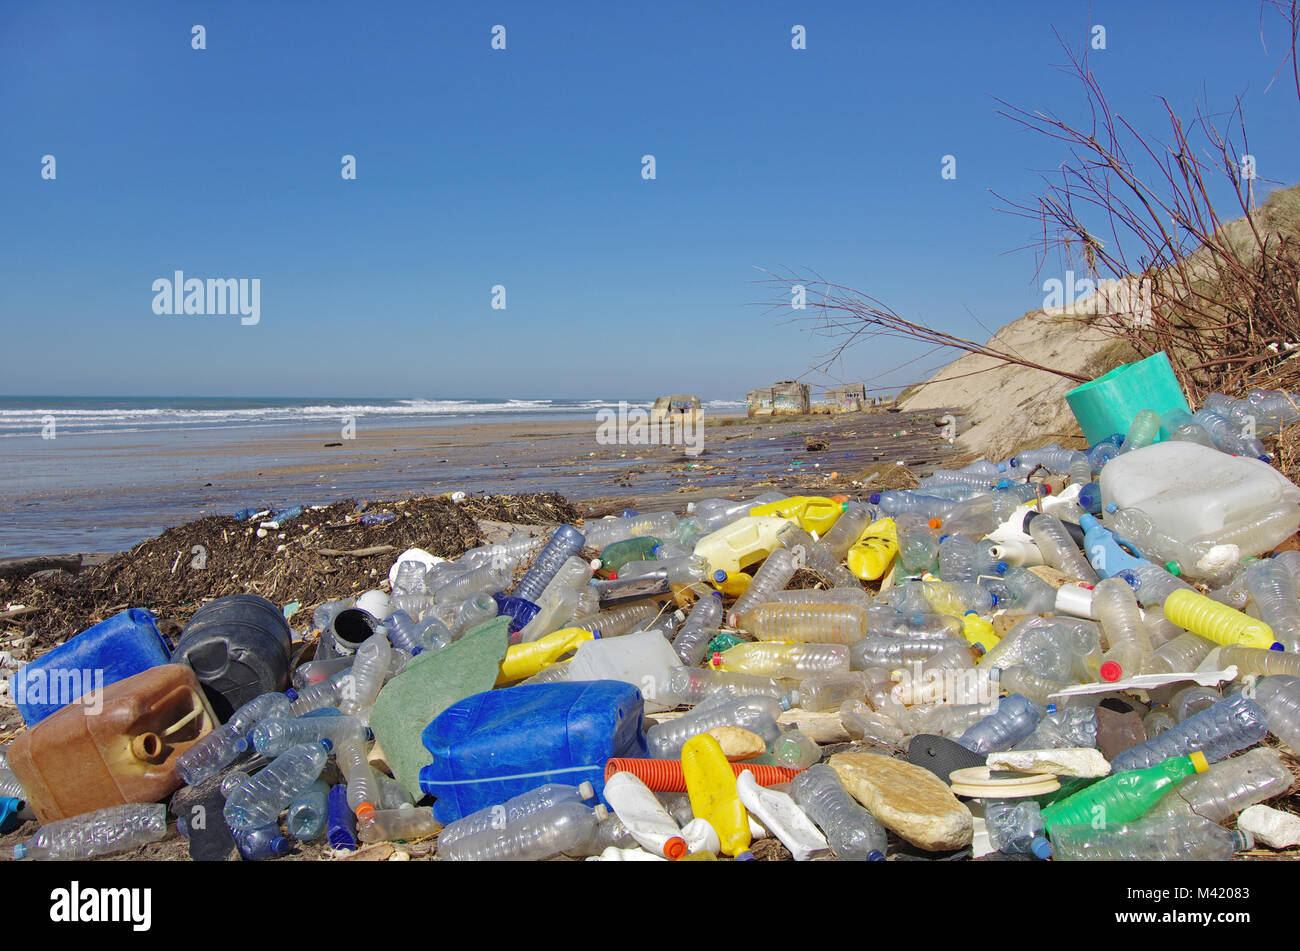 garbage, plastic, and wastes on the beach after winter storms. Stock Photo